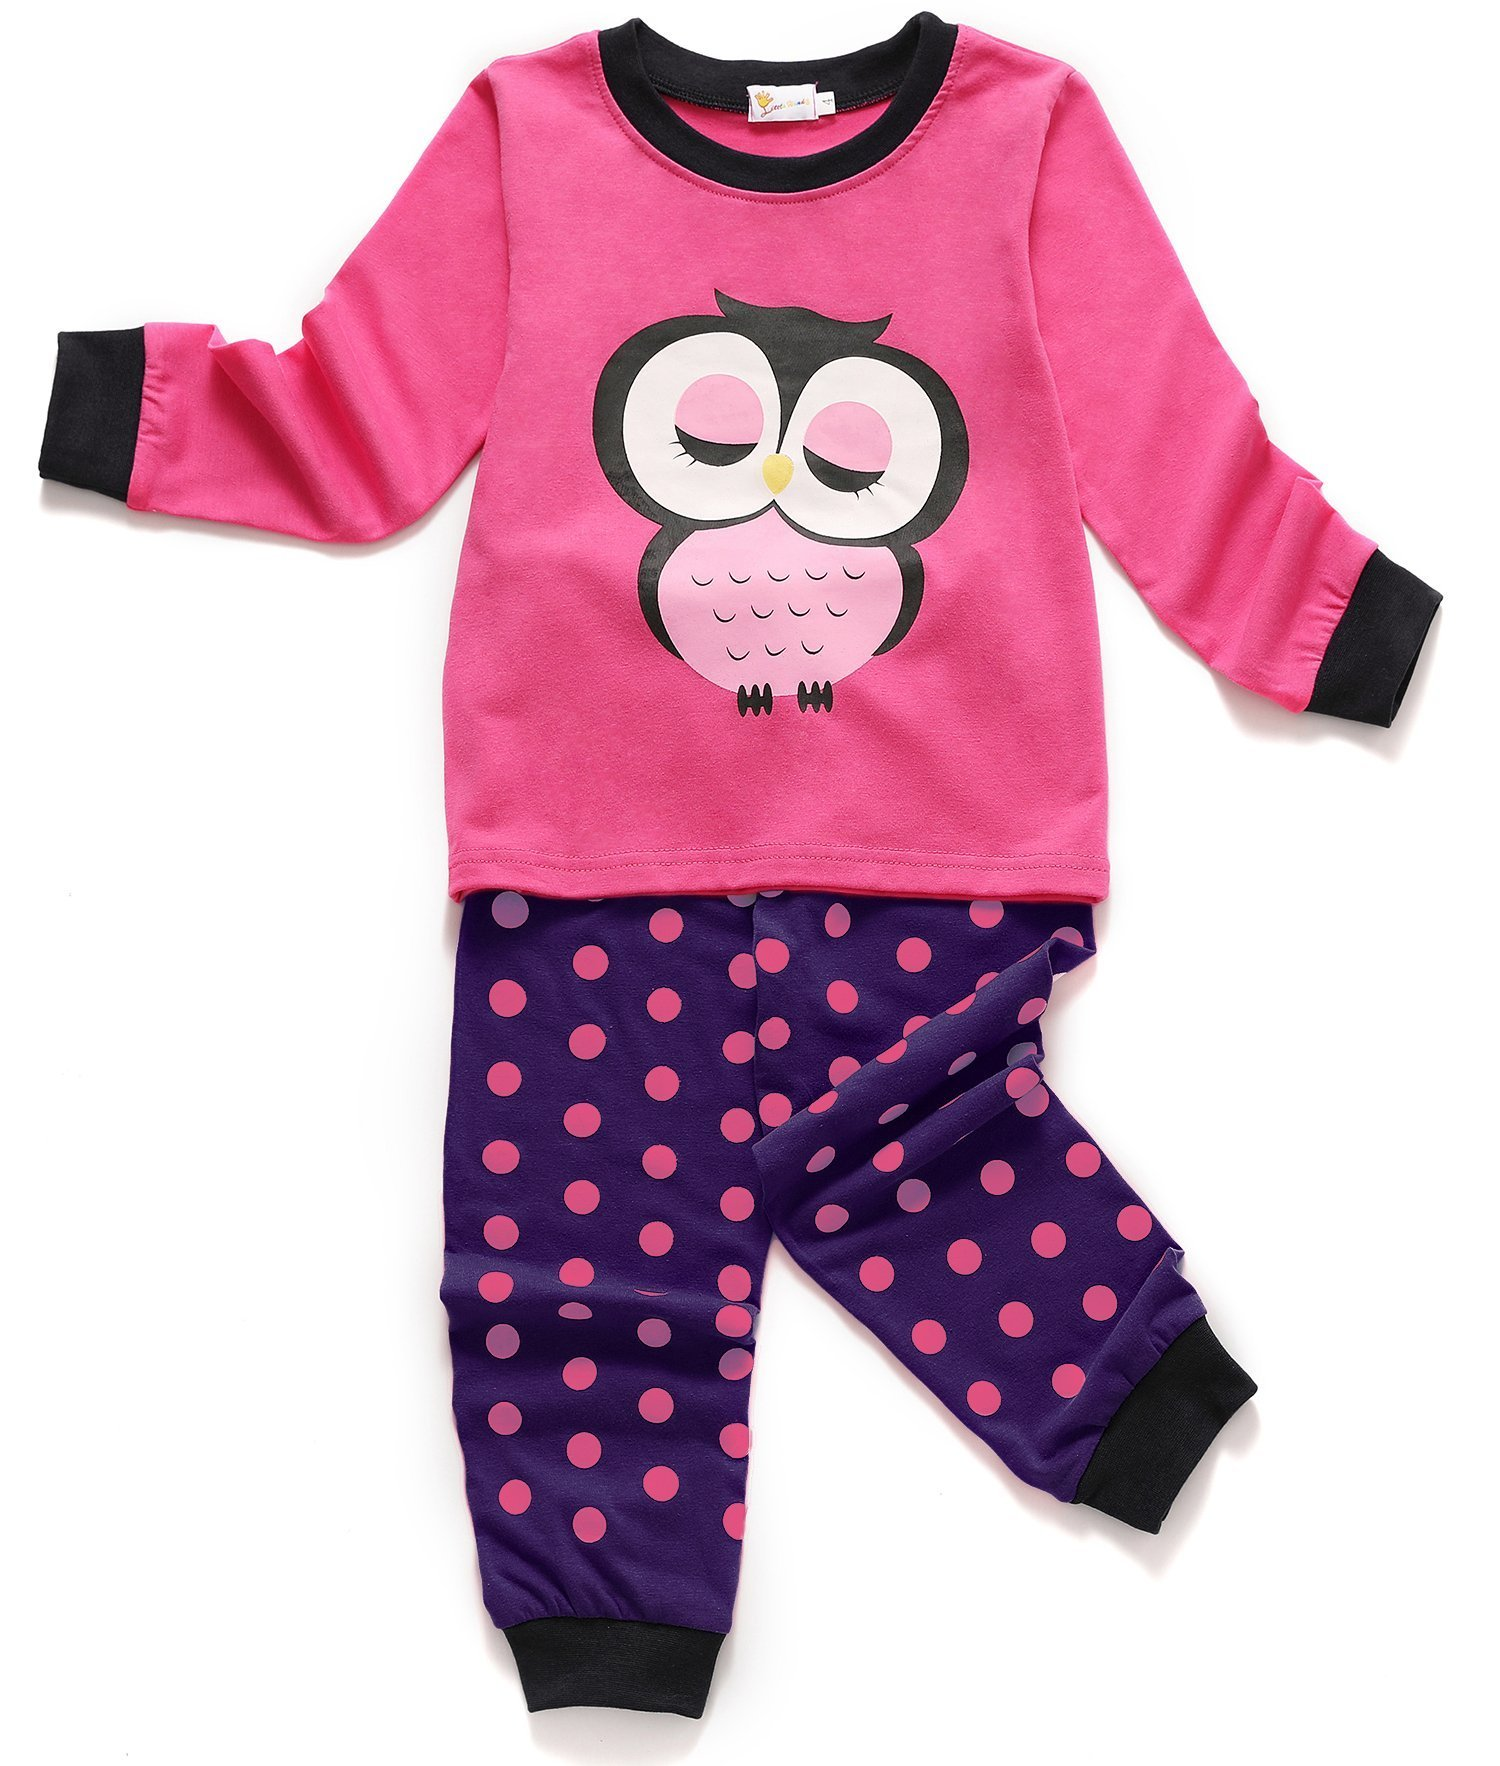 Girls Owl Pajamas Toddler Kids Long Sleeve PJs 2 Pieces Cotton Sleepwear Set Size 6-7 Years